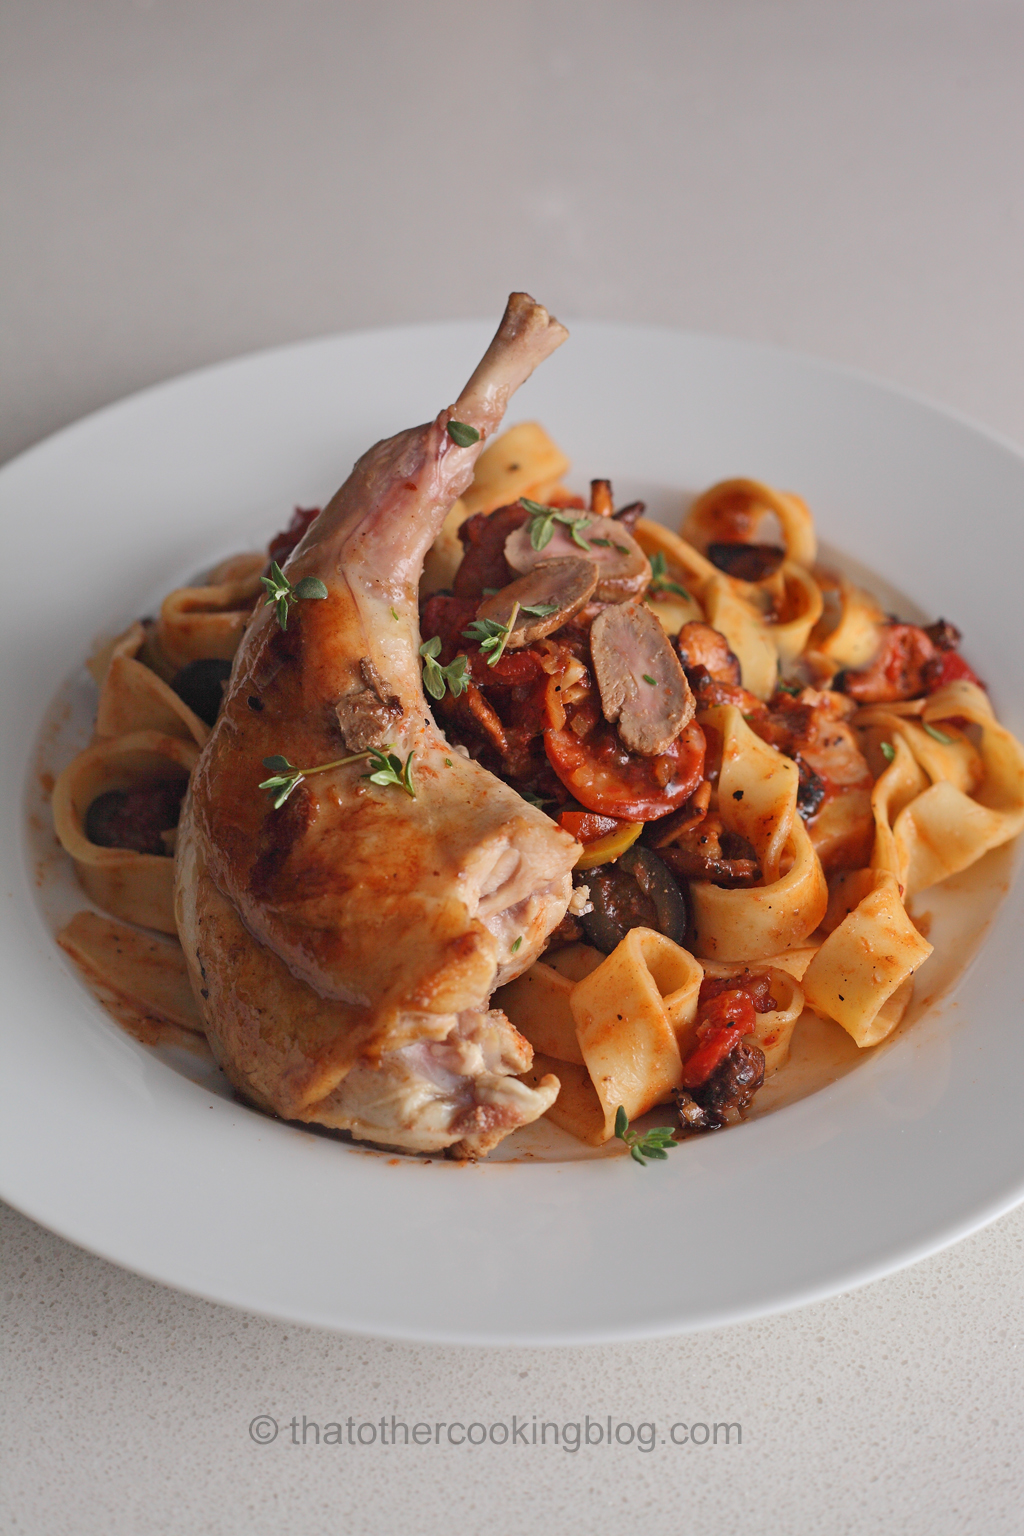 Rabbit Ragout with Fresh Tagliatelle Pasta